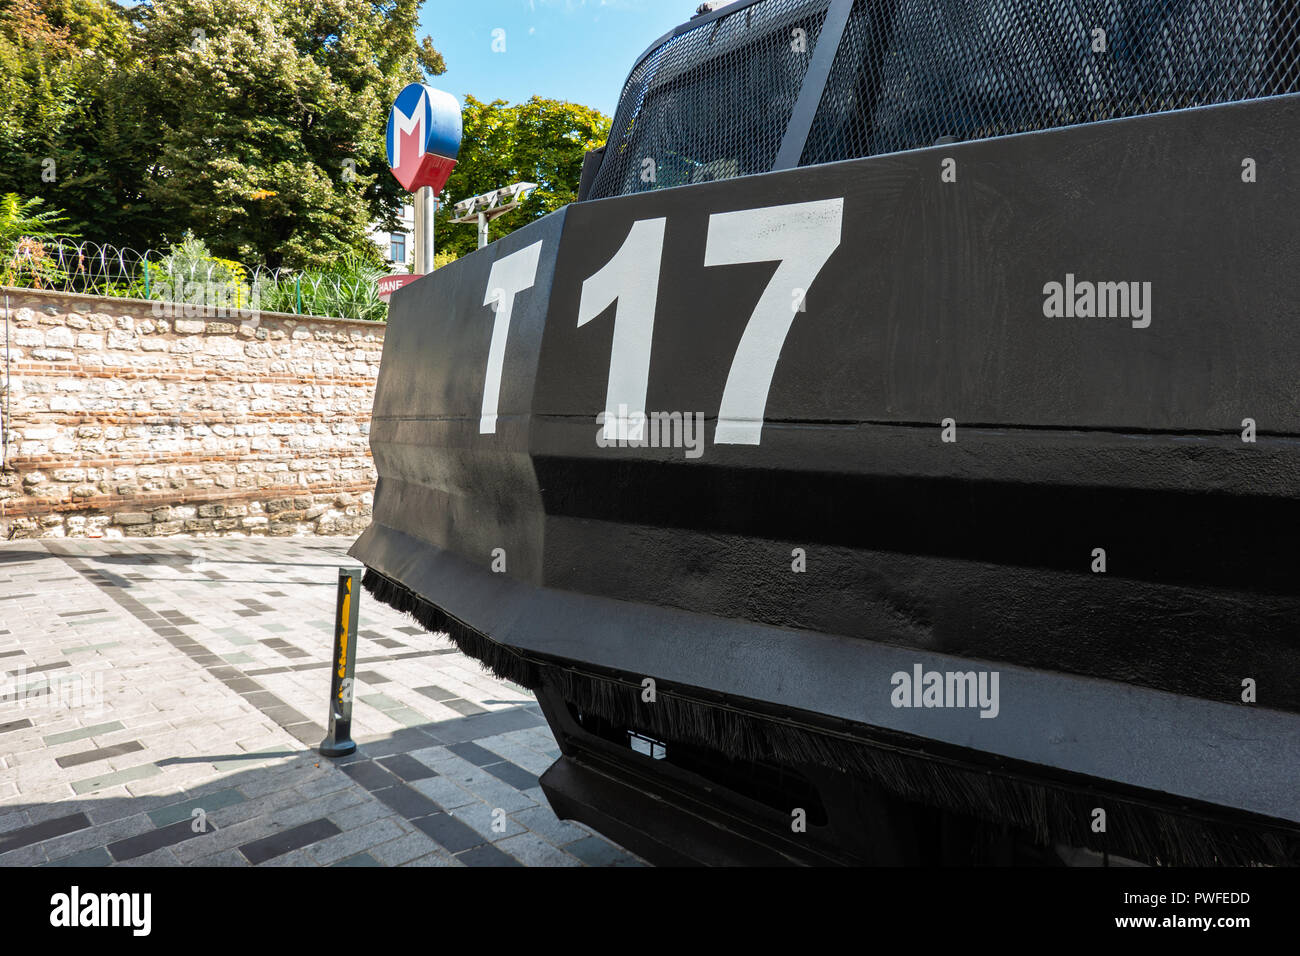 Istanbul, Turkey, September 2018: Detailed view of a black armoured car of the Turkish police - Stock Image